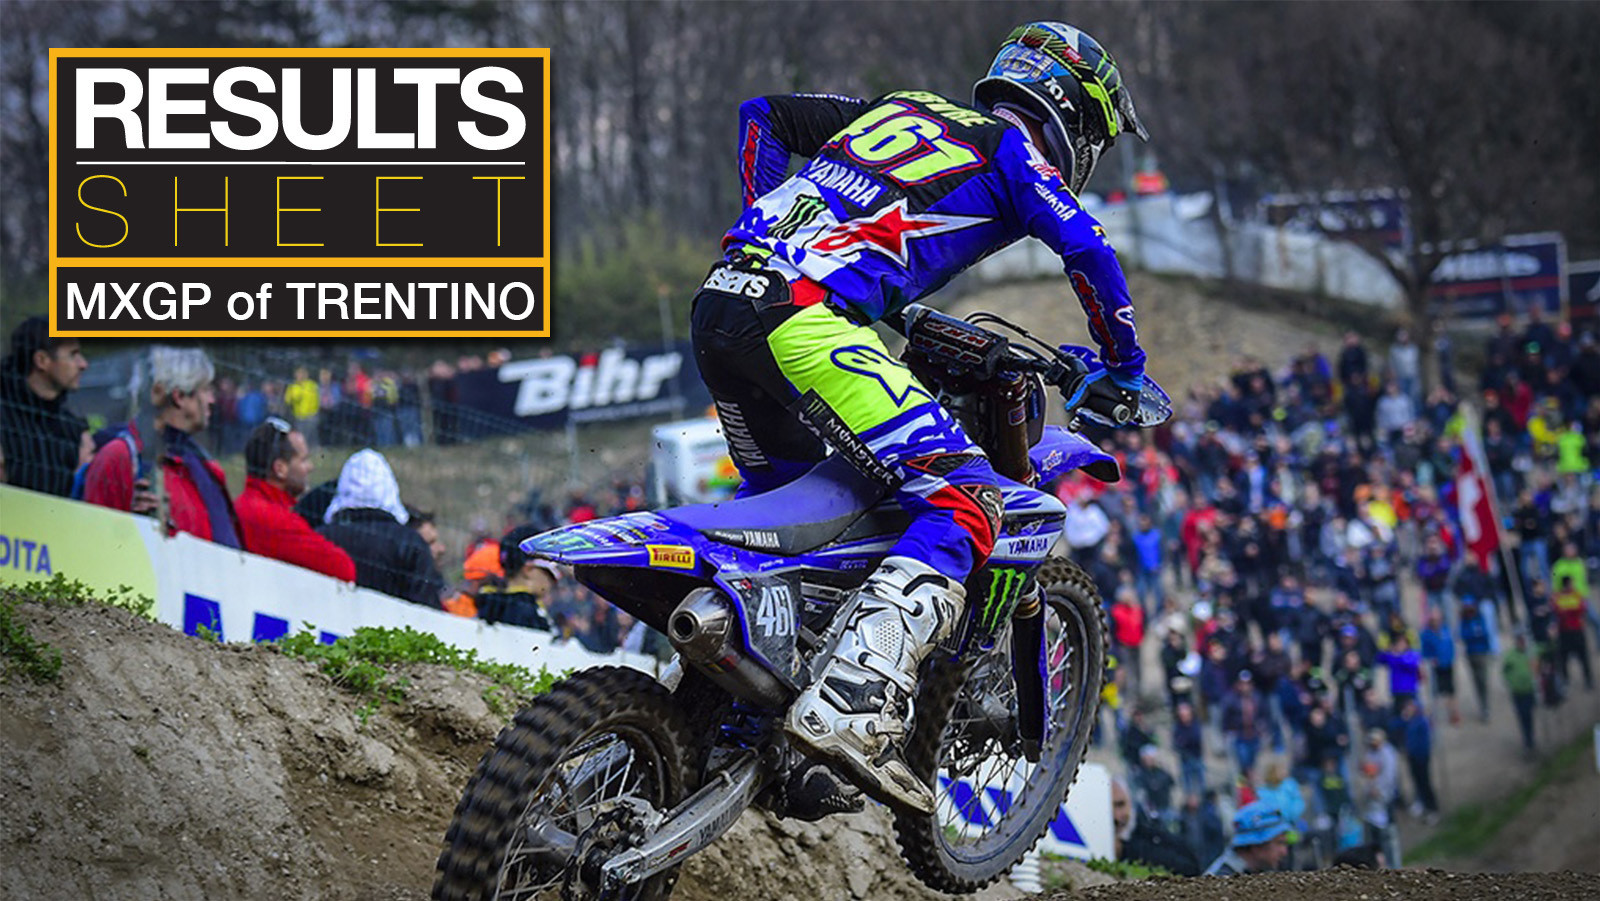 Results Sheet: 2018 MXGP of Trentino